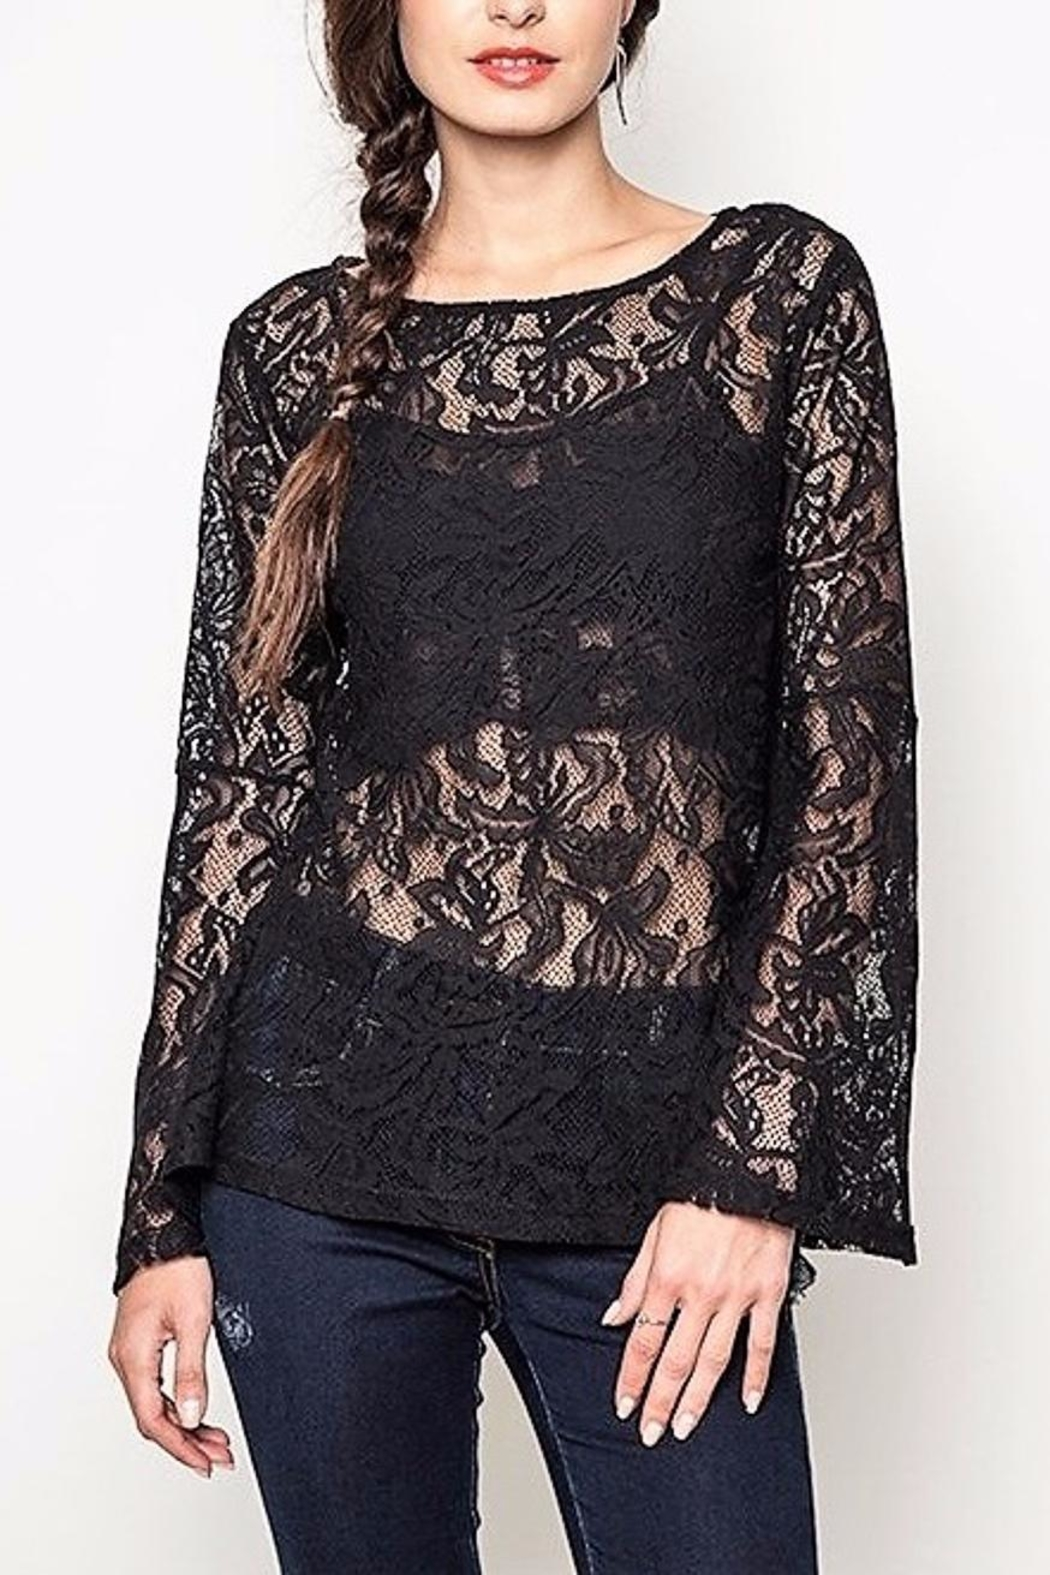 People Outfitter Black Lace Top - Front Full Image